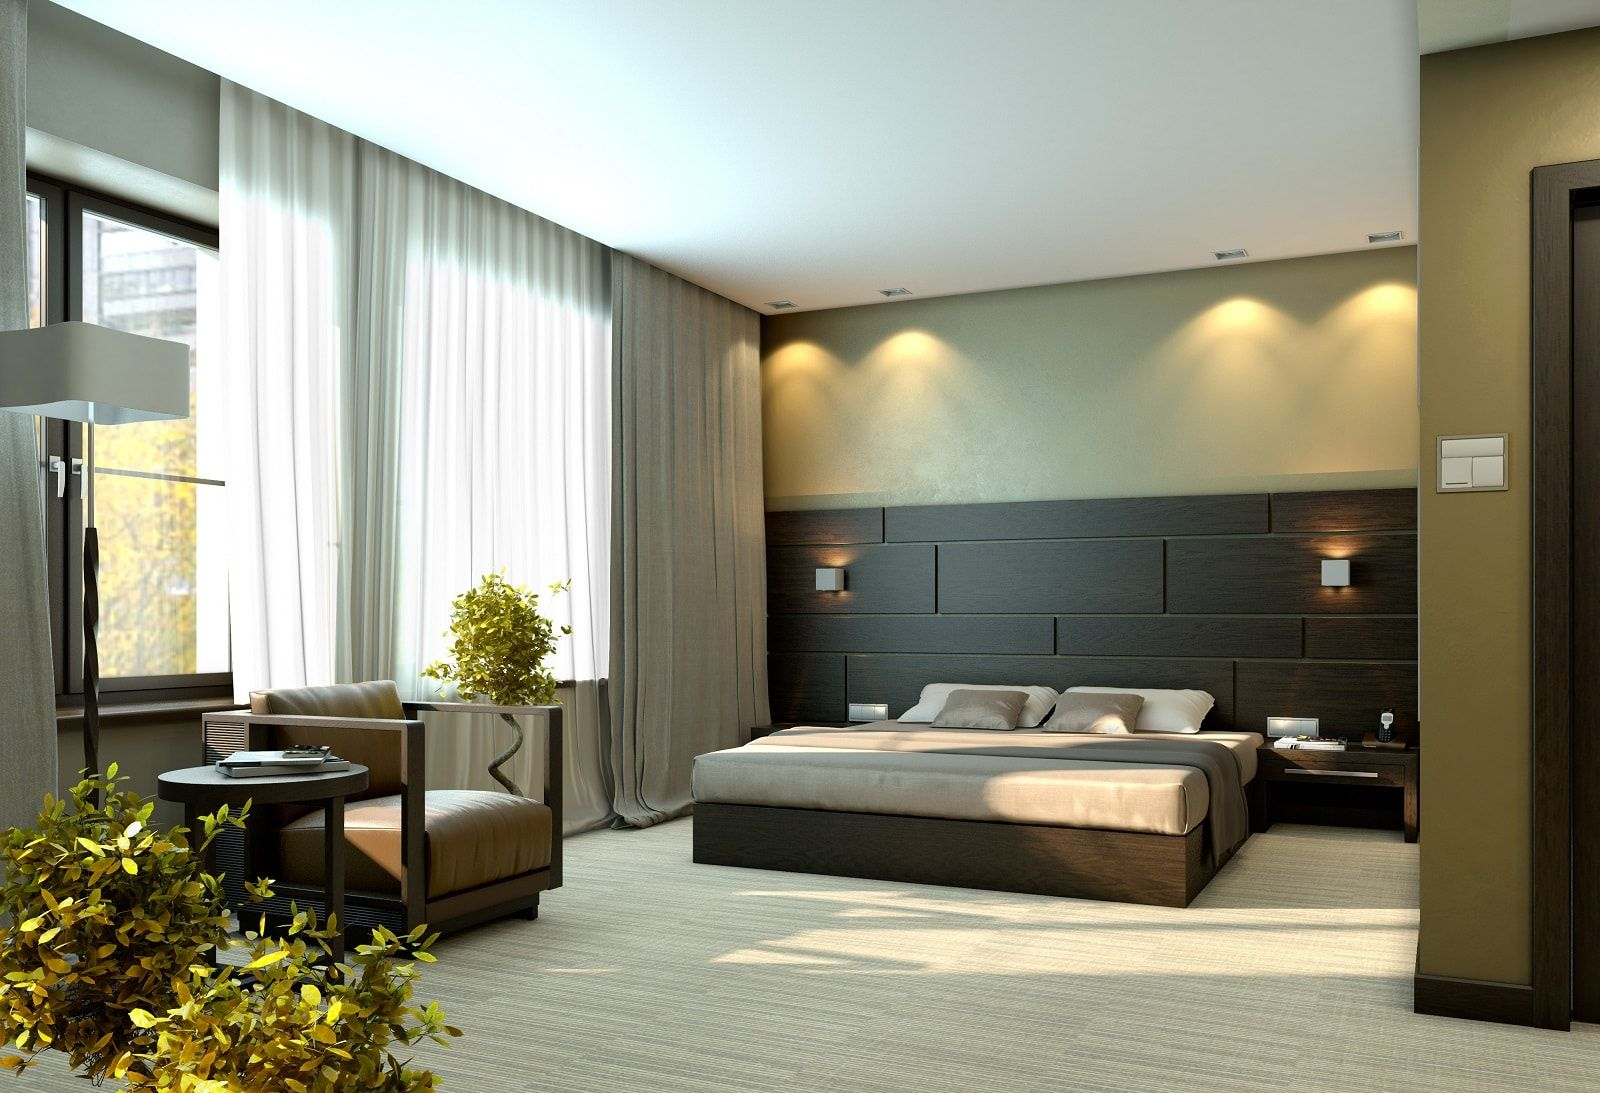 Contemporary fresh bedroom design with thorough additional lighting of the bed